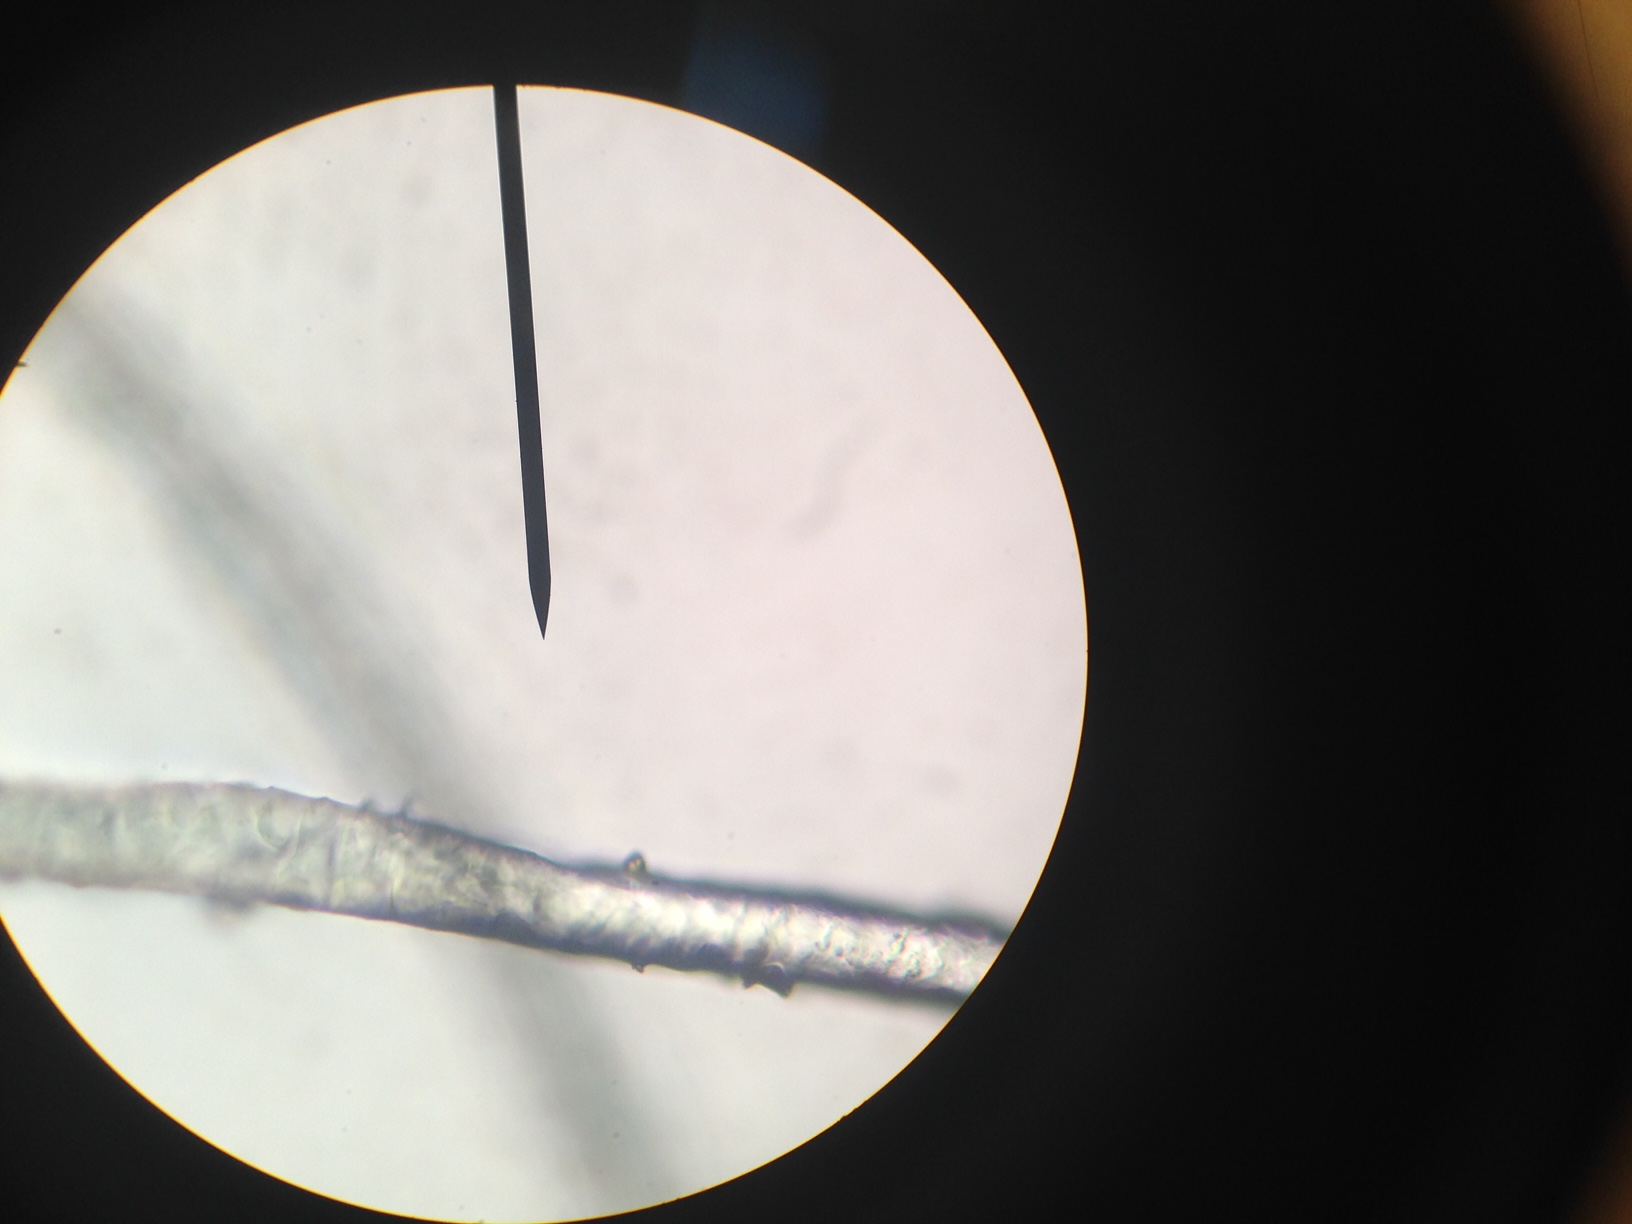 Students use microscopes to analyze hair samples